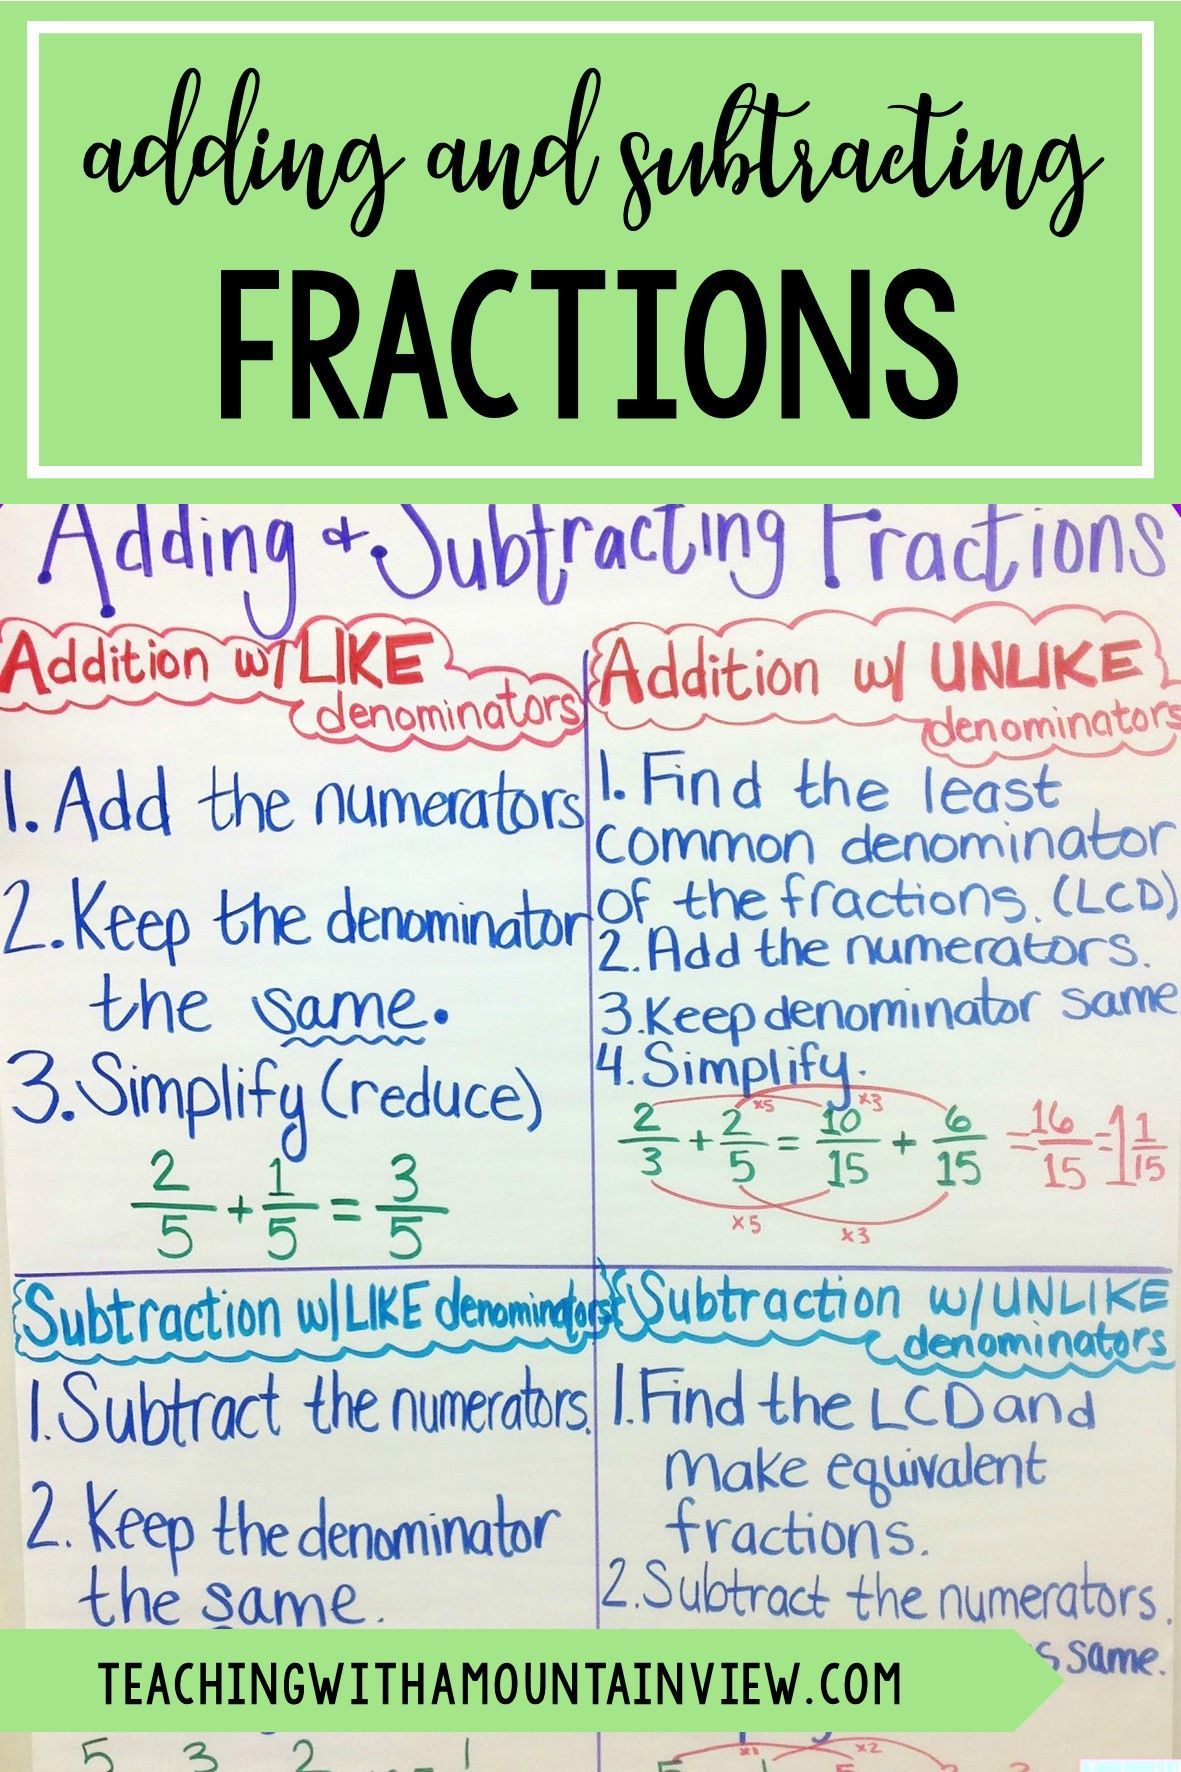 Adding Amp Subtracting Fractions